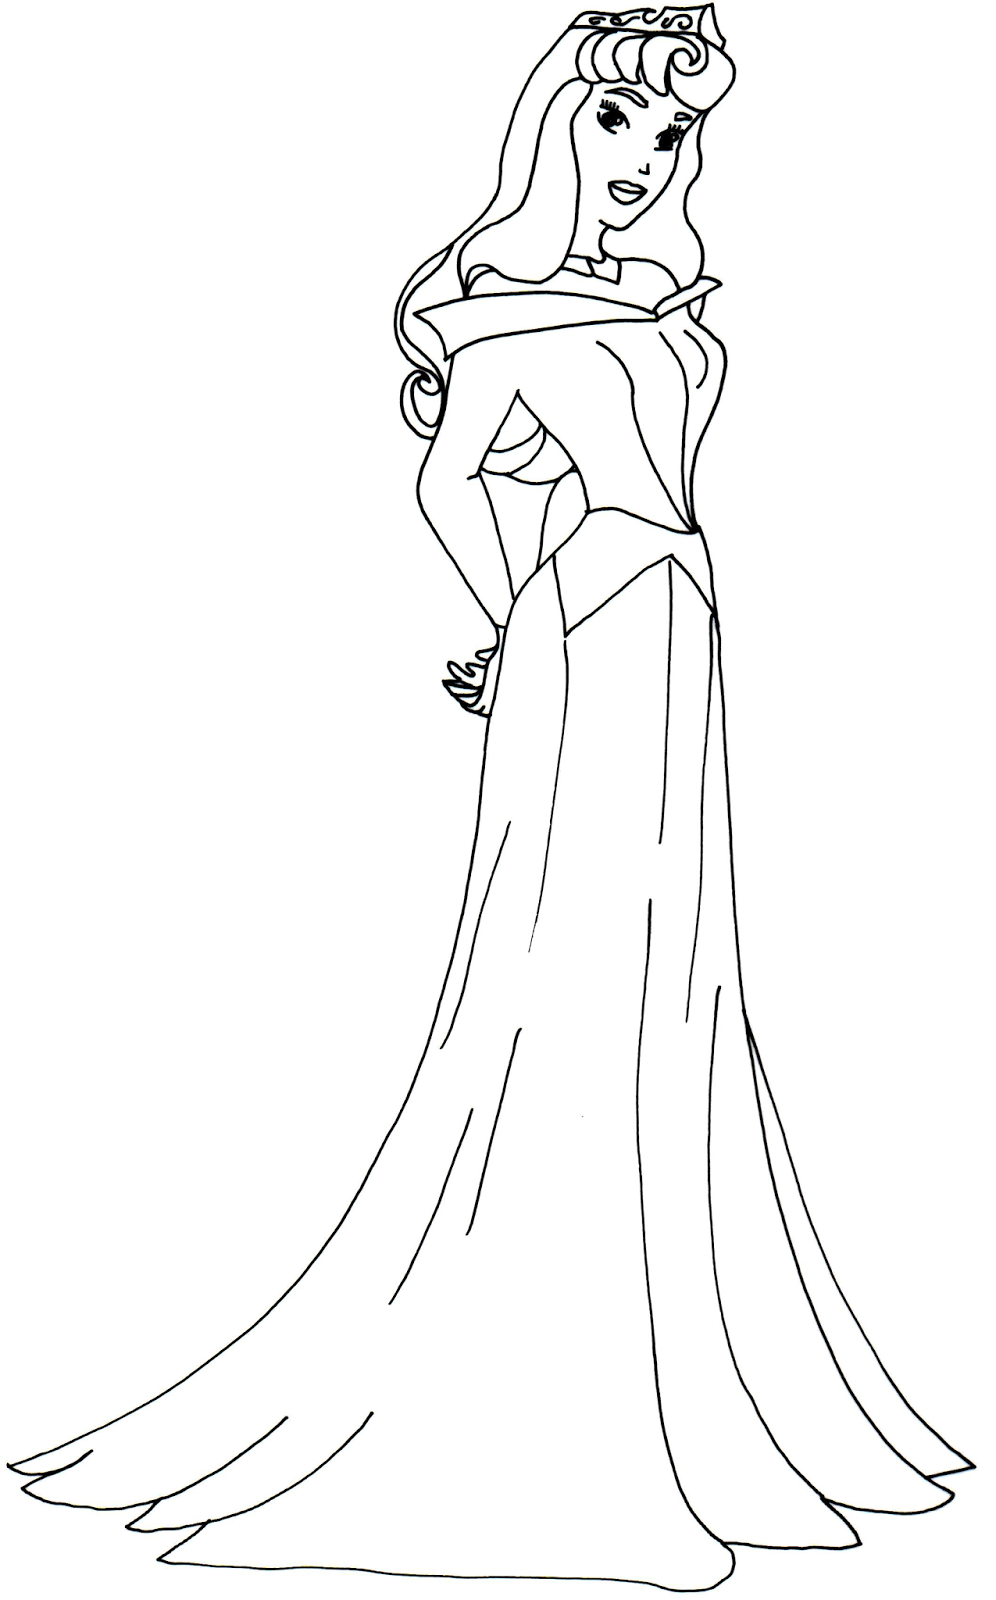 princess aurora sofia the first coloring page | Coloring Kids